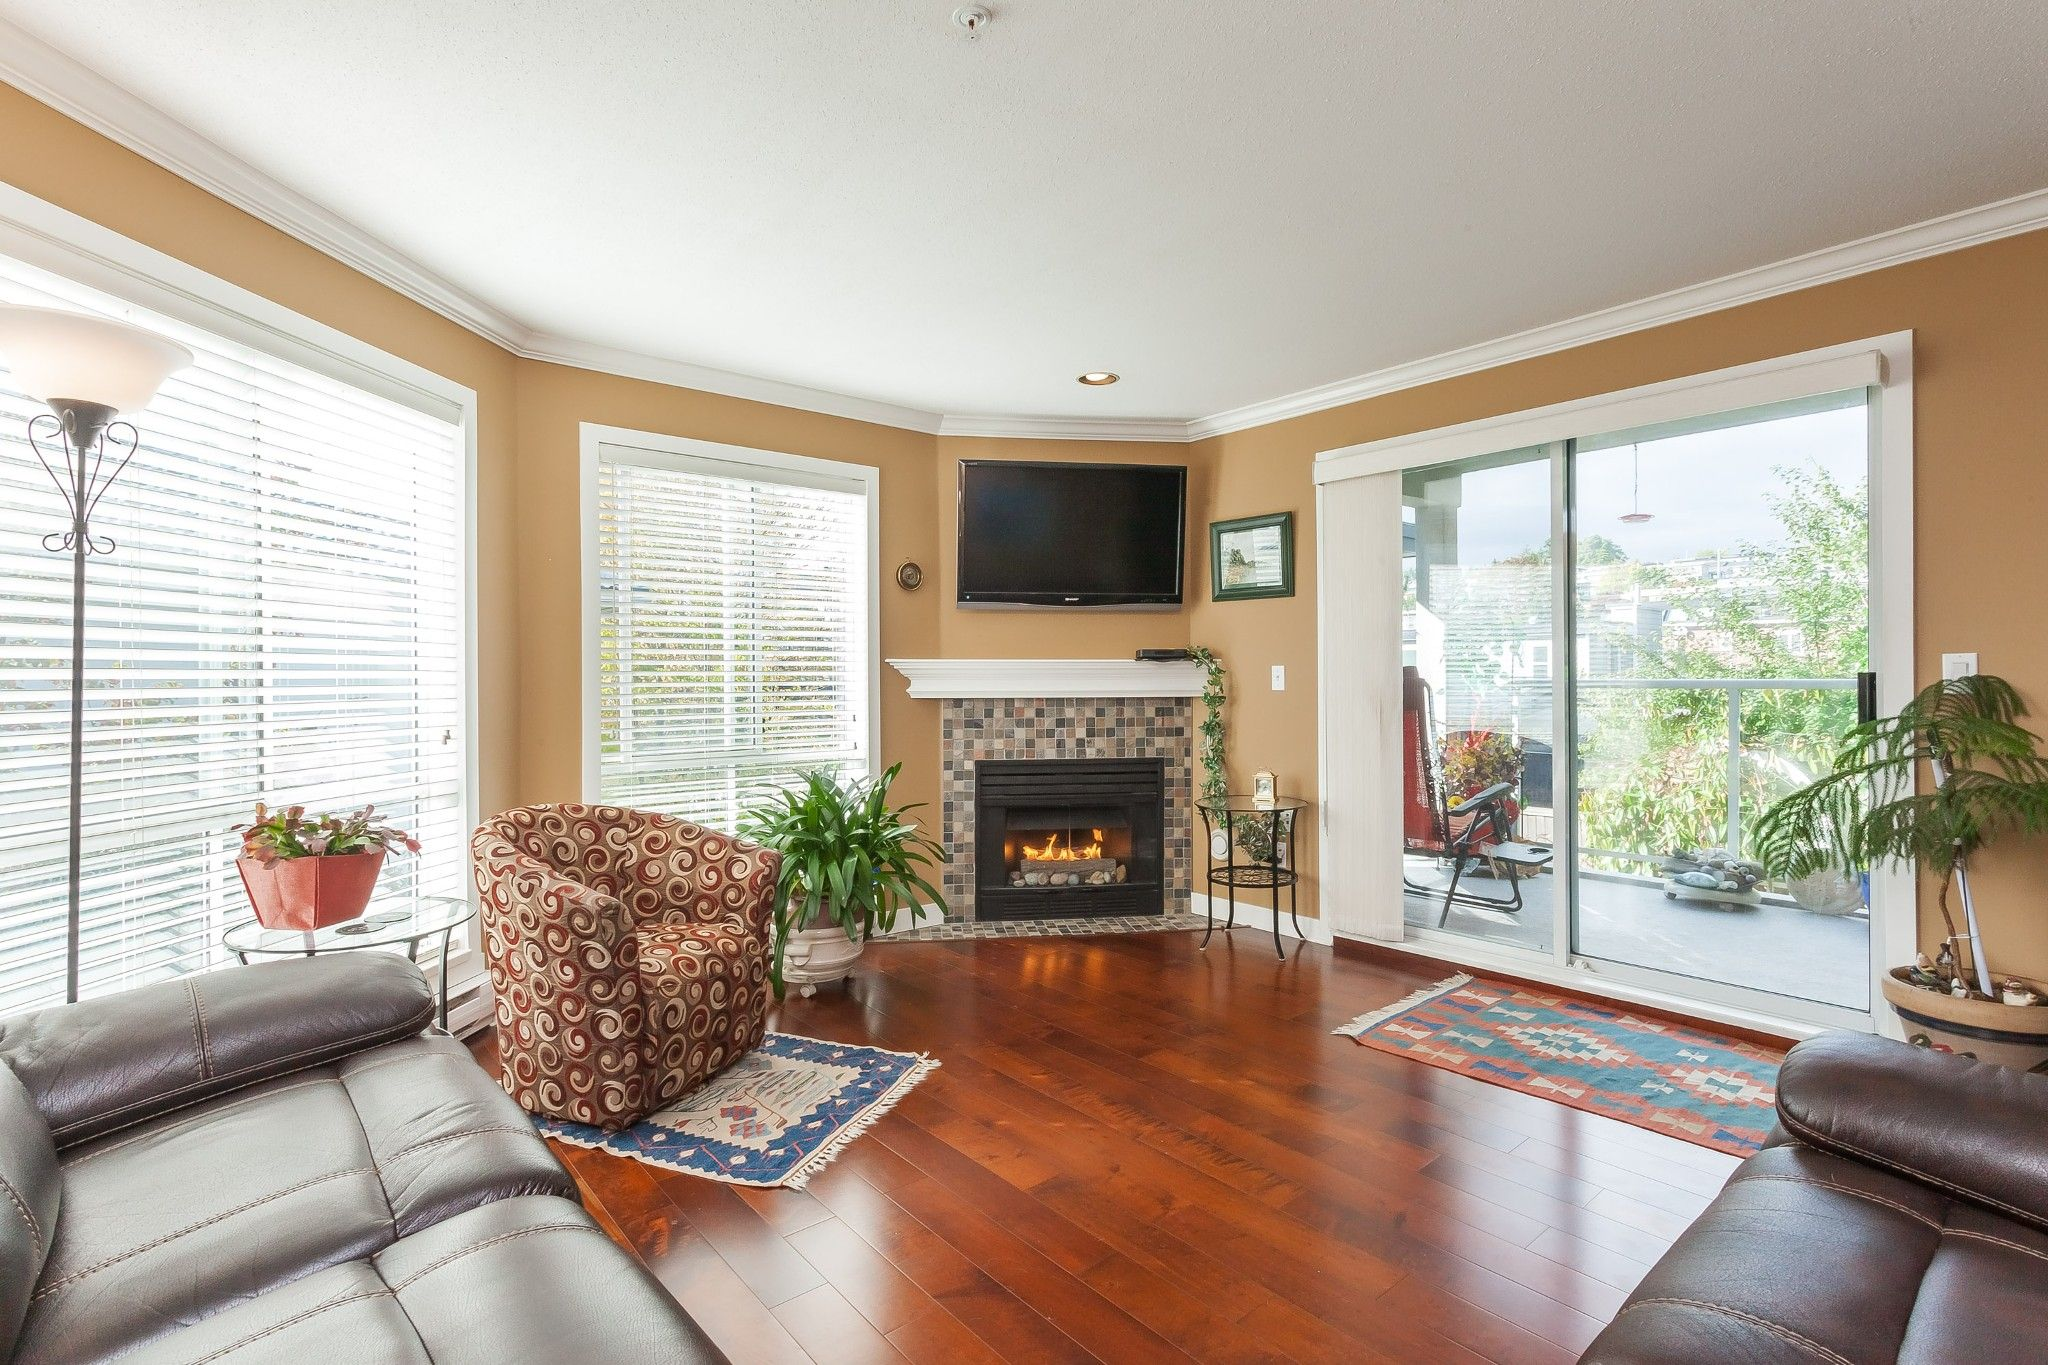 """Main Photo: 307 15941 MARINE Drive: White Rock Condo for sale in """"THE HERITAGE"""" (South Surrey White Rock)  : MLS®# R2408083"""